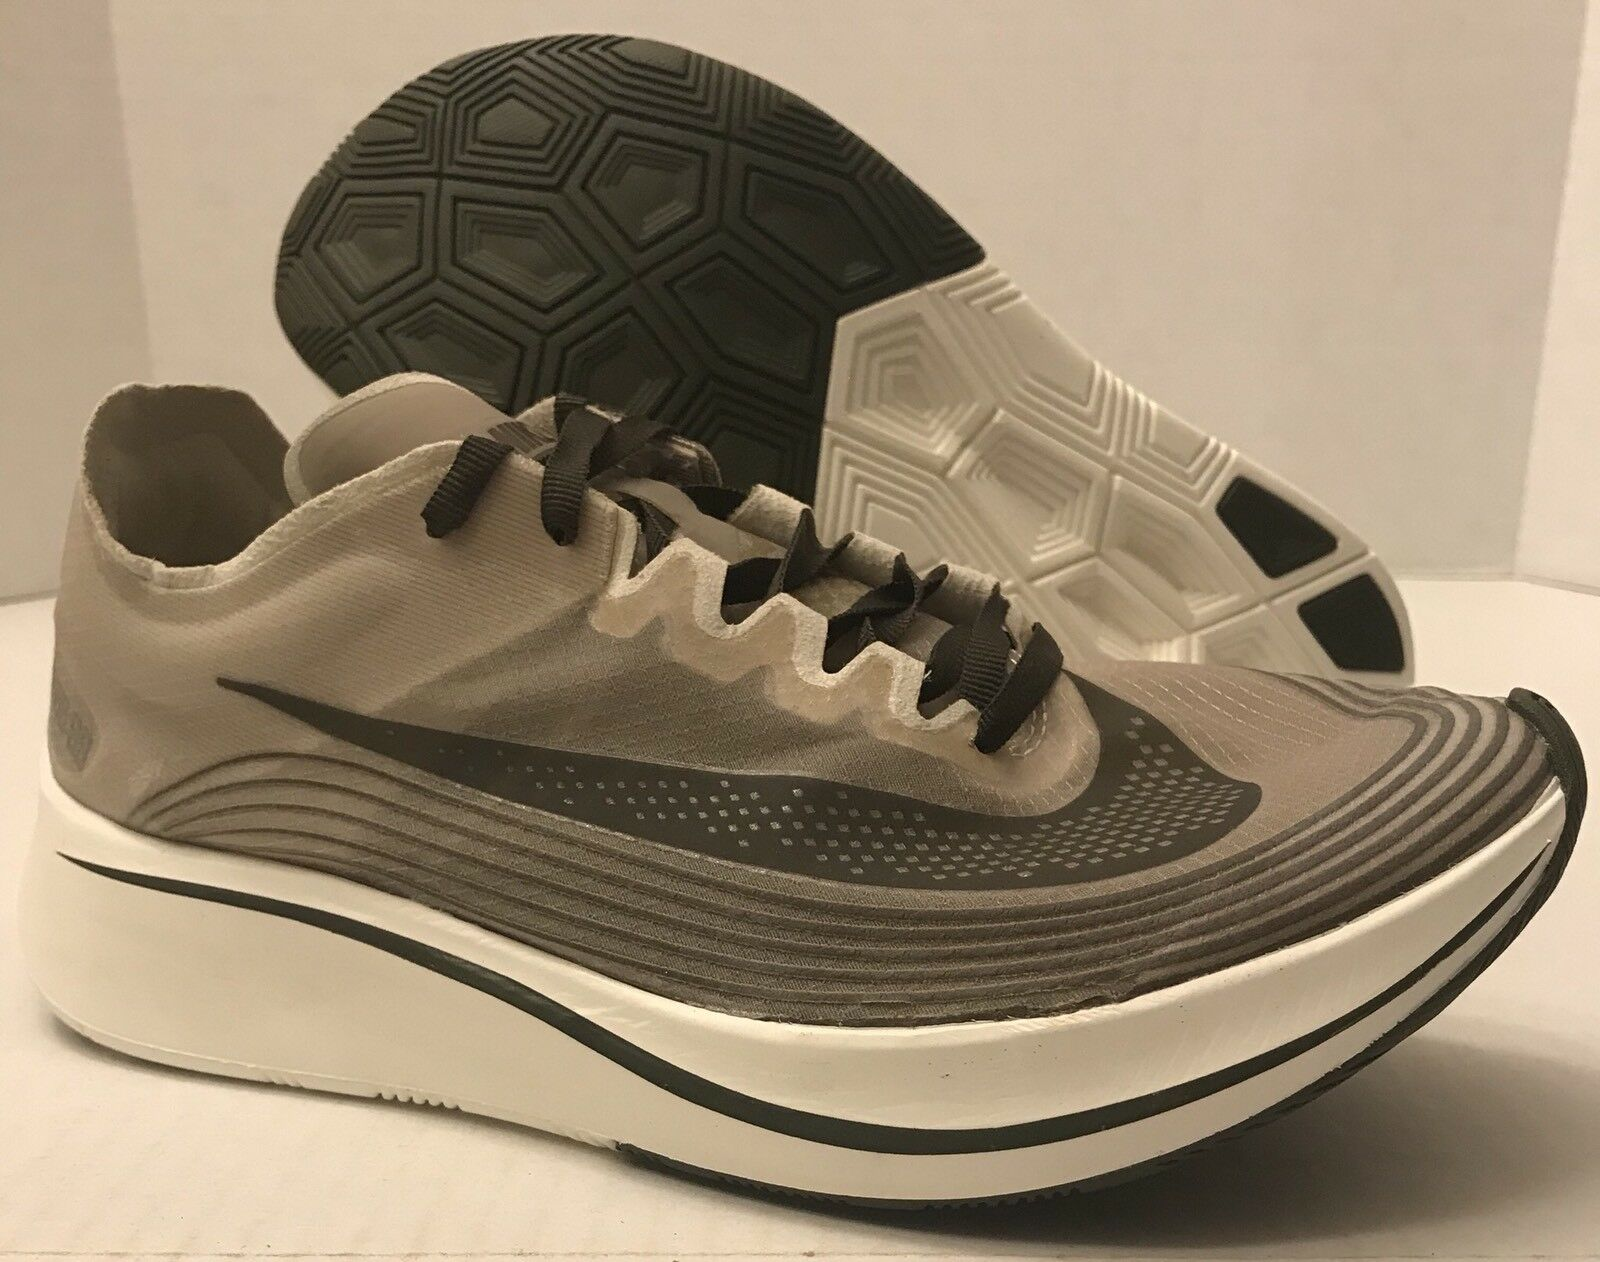 NIKELAB ZOOM FLY SP AA3172-300 Dark-Loden Price reduction nike lab NO TOP Wild casual shoes